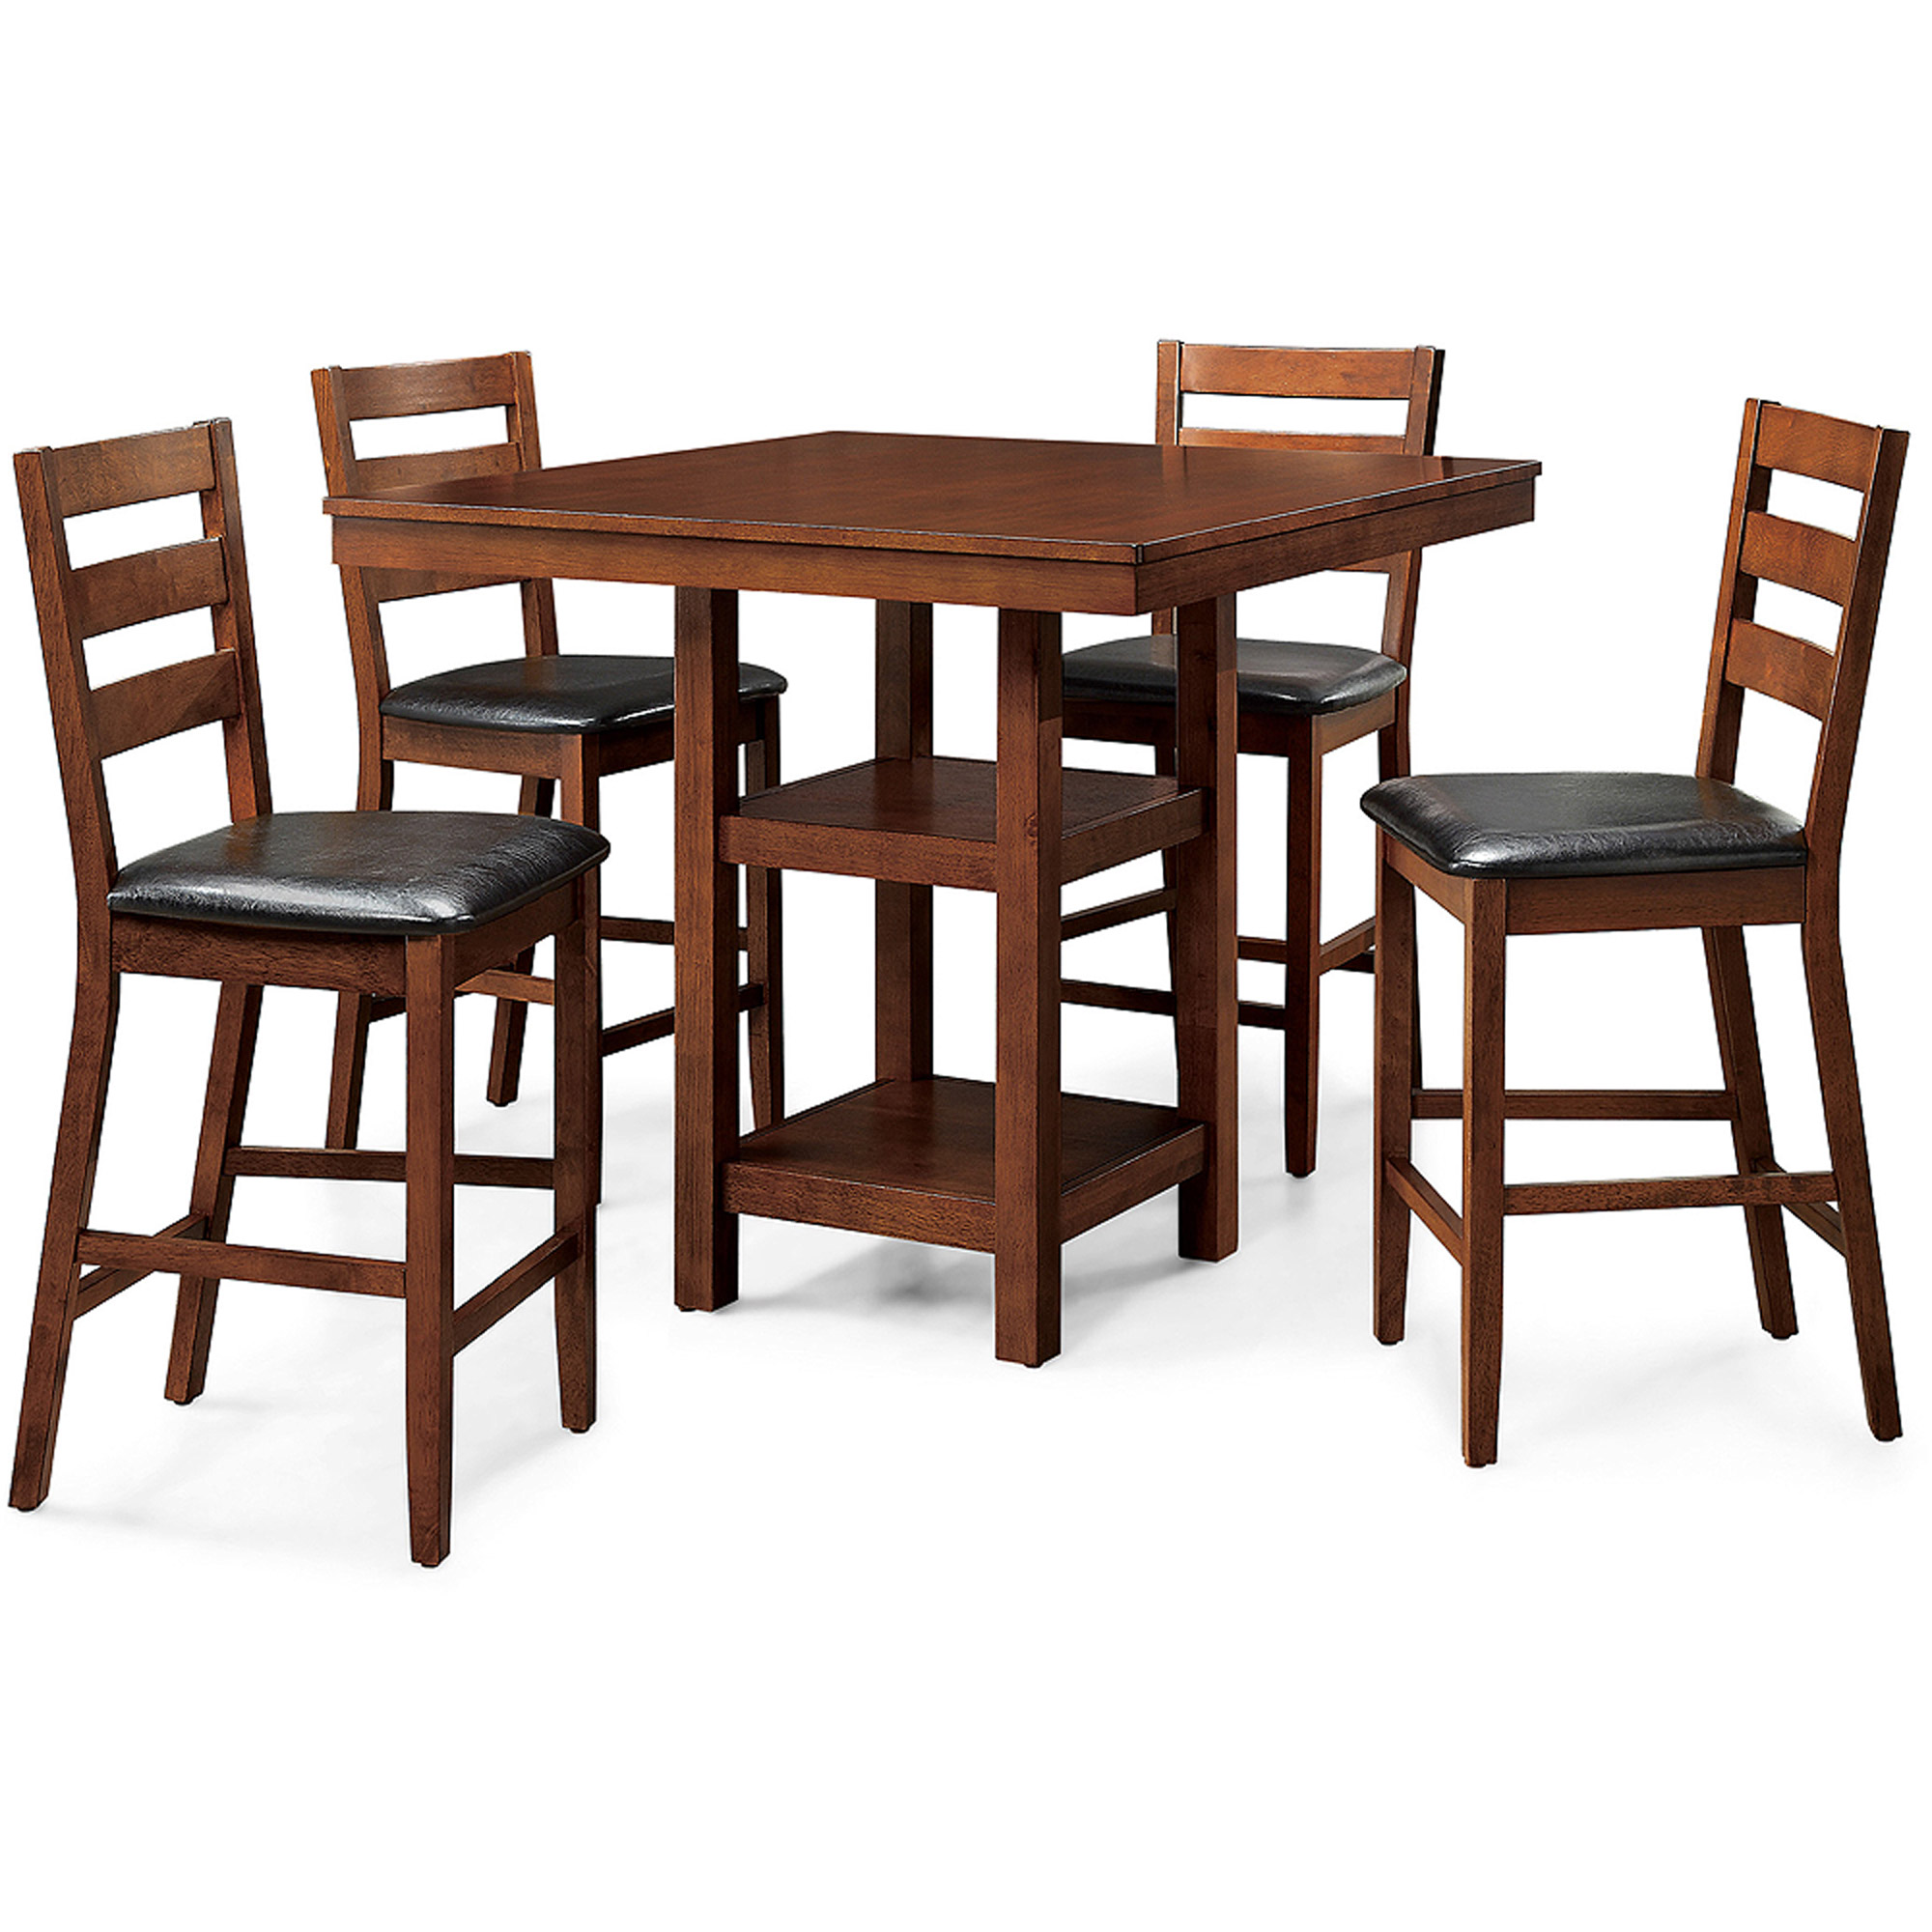 Better Homes & Gardens Dalton Park 5-Piece Counter Height Dining Set, Includes Table and Four Chairs, Mocha Finish